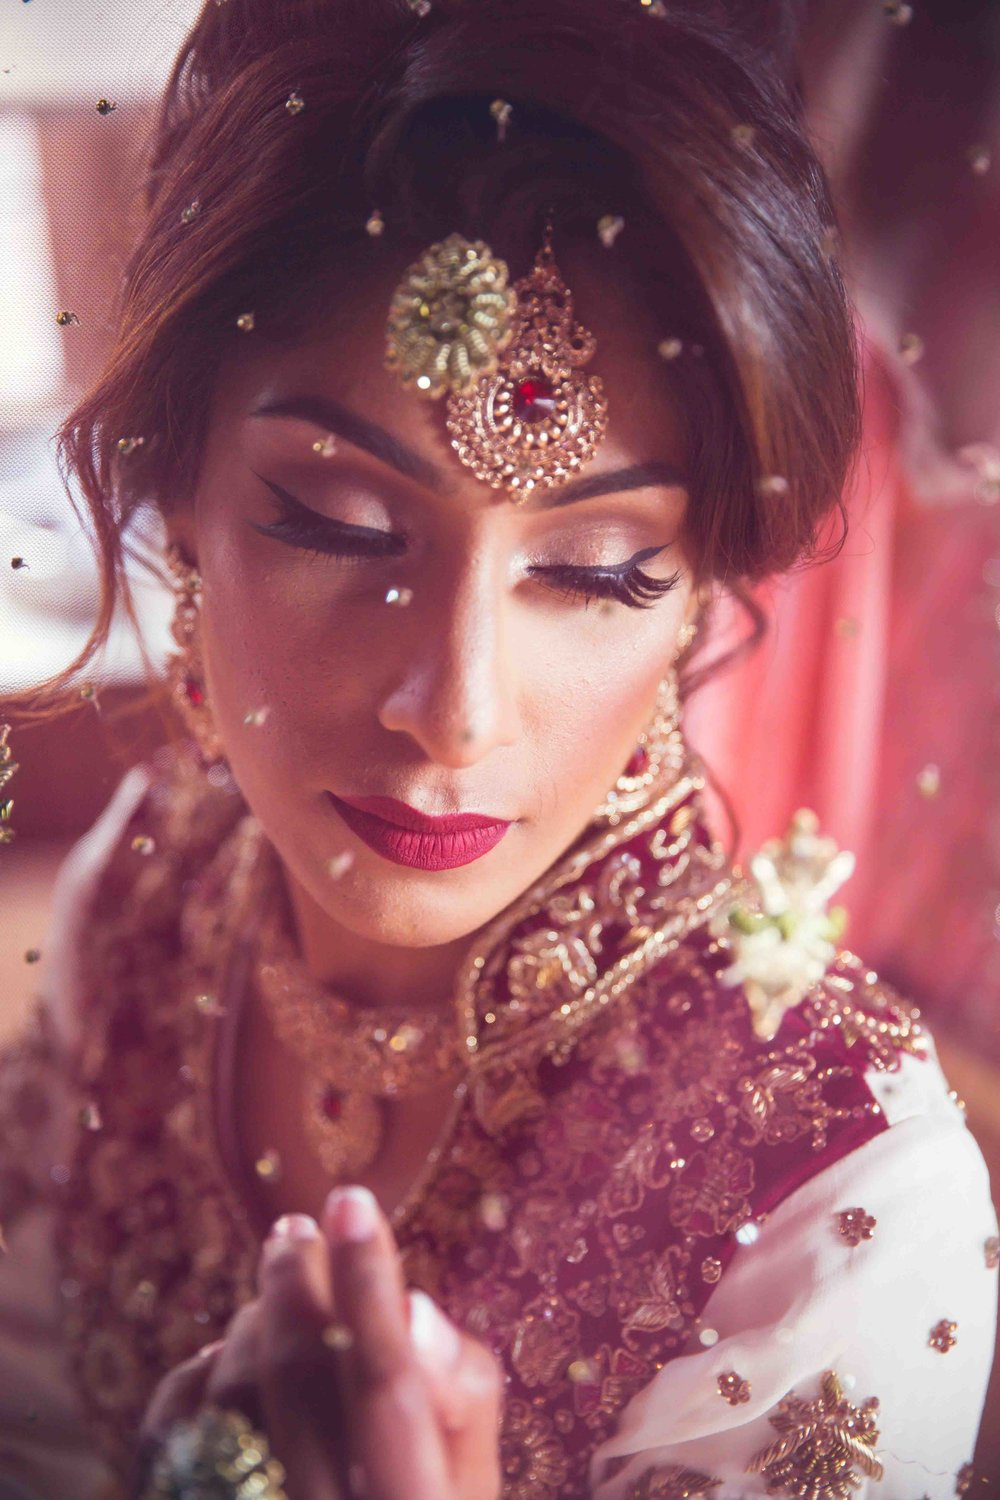 Asian Wedding Photographer Opu Sultan Photography Lyme Park Scotland Edinburgh Glasgow London Manchester Liverpool Birmingham Wedding Photos prewed shoot Azman & Saira Blog-49.jpg